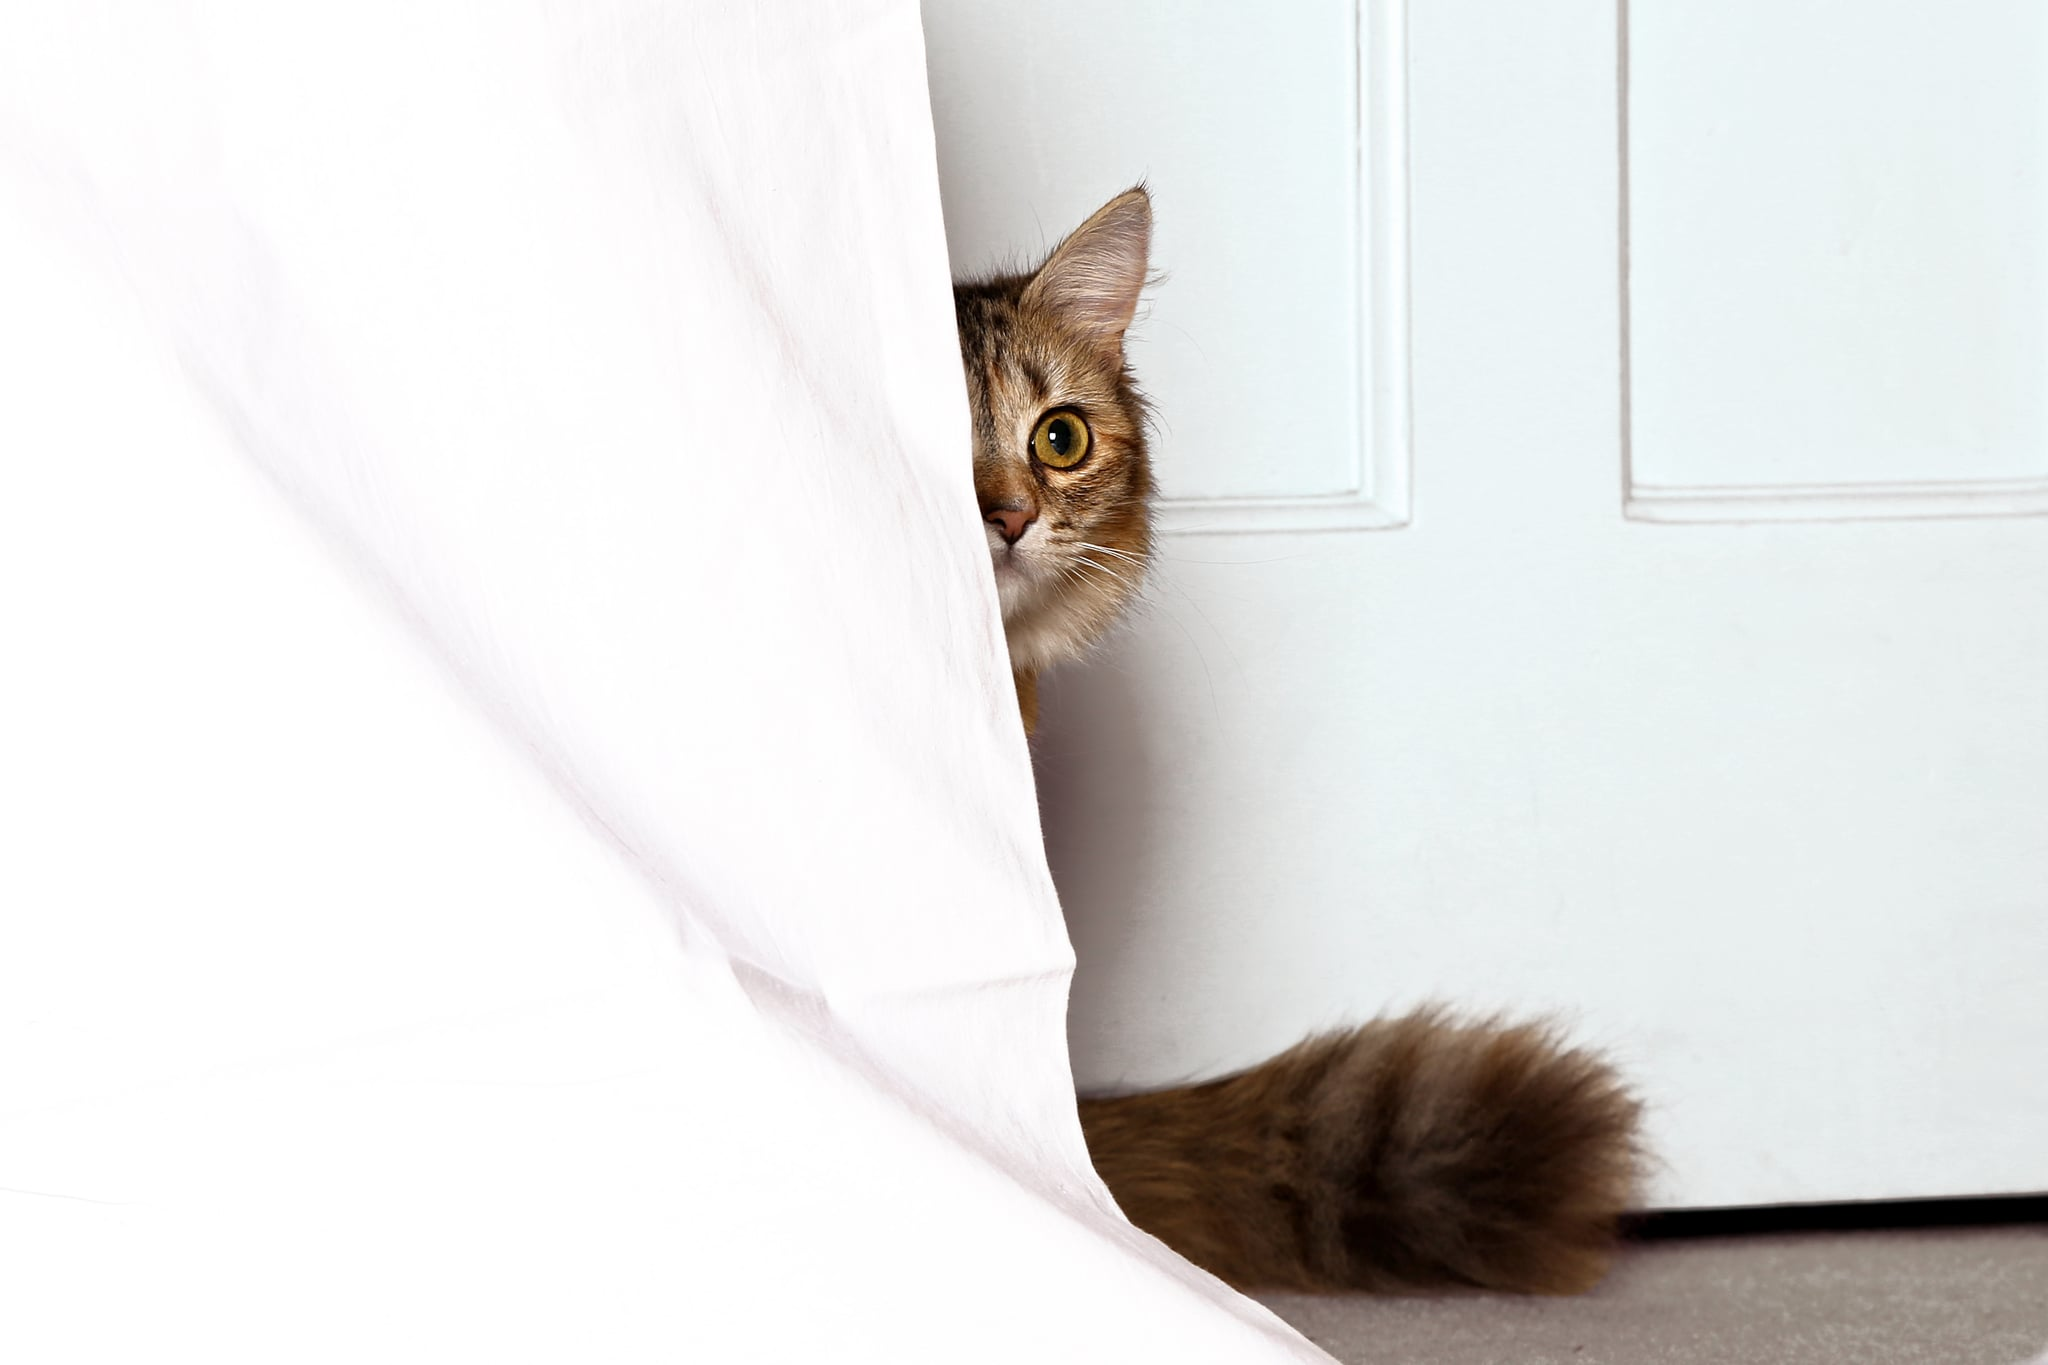 Cat coming out of behind bedsheets.